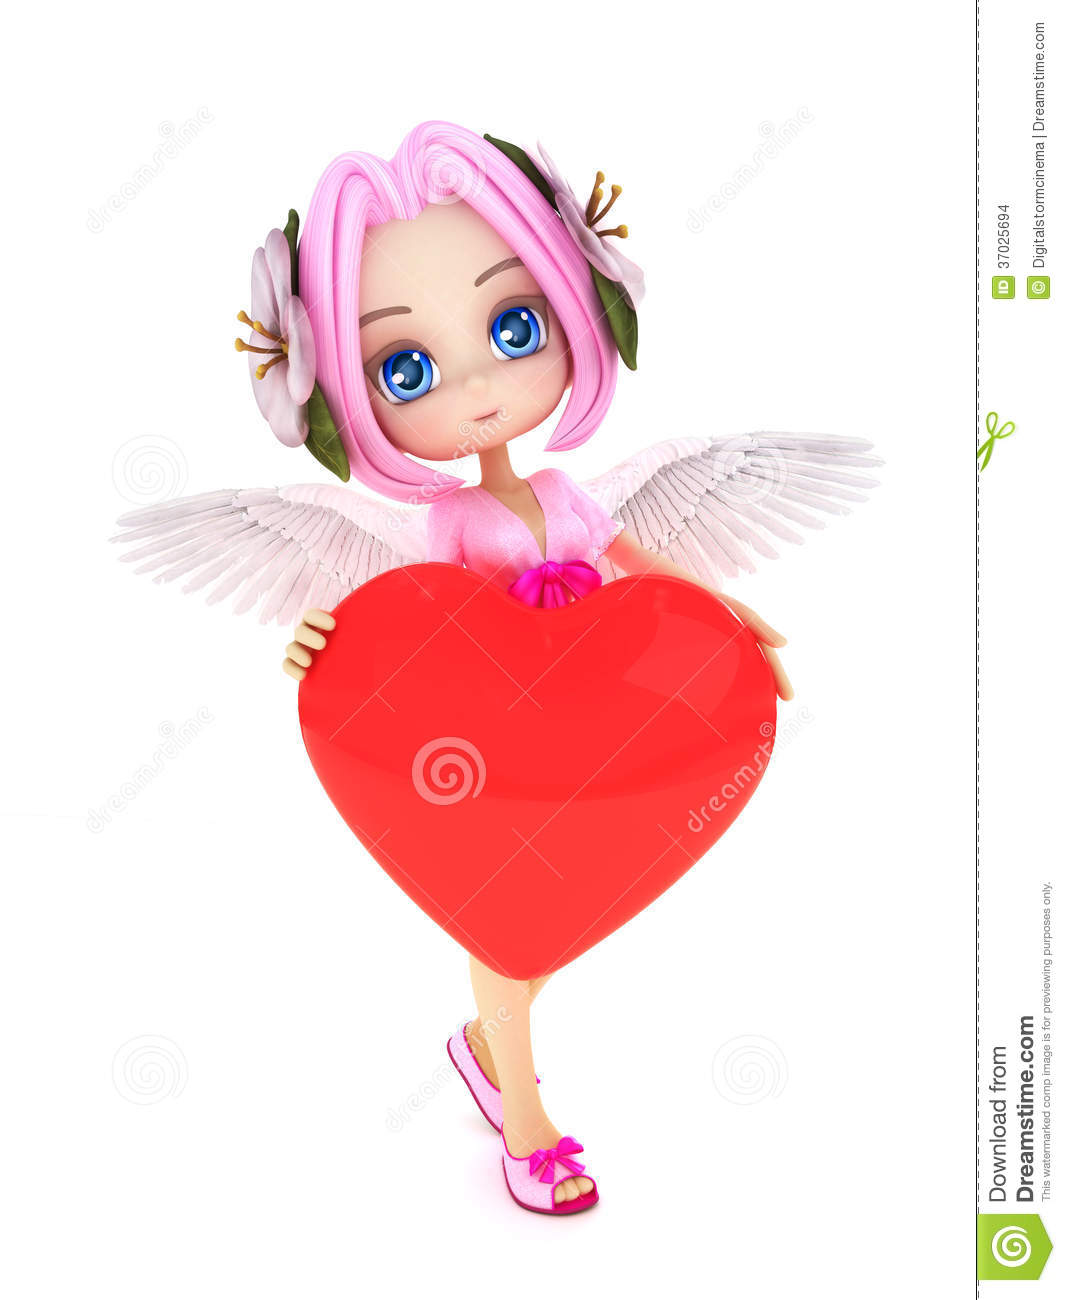 Cupid anime with wings and a heart